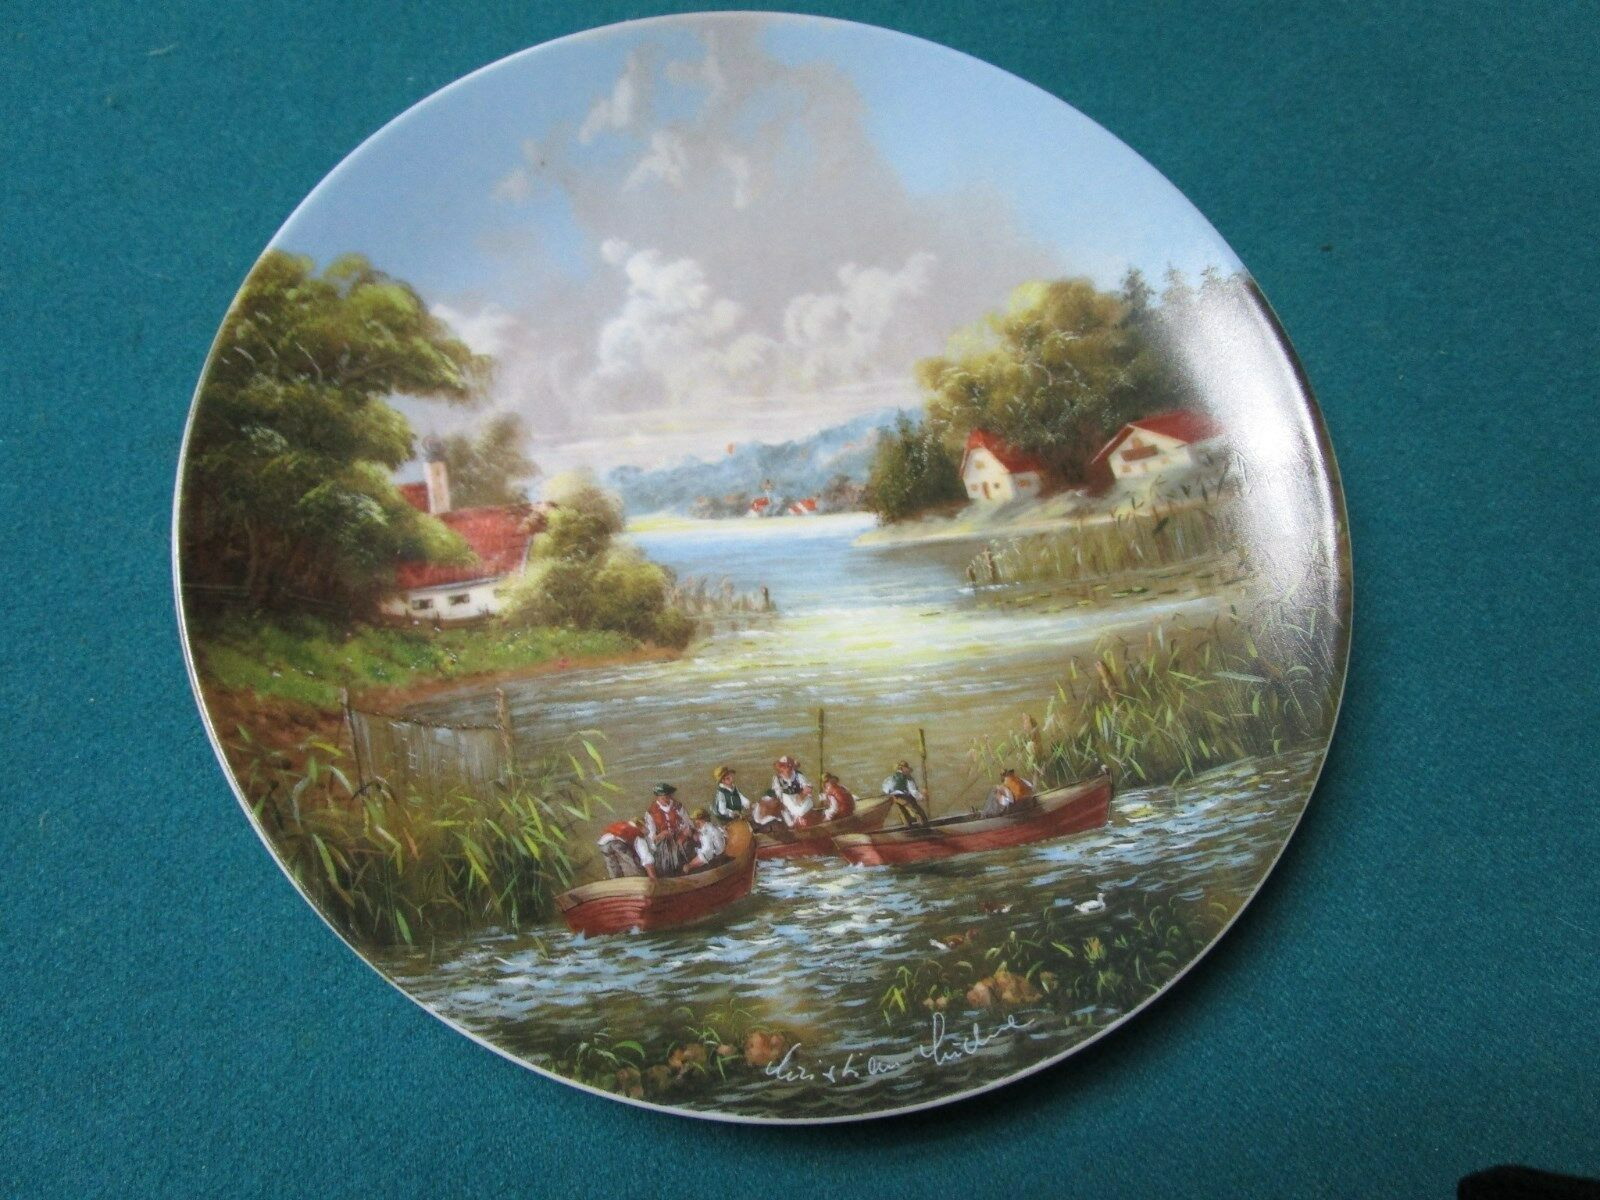 seltmann weiden 8 collector plates christian luckel 39 s idyllic village life 6 ebay. Black Bedroom Furniture Sets. Home Design Ideas